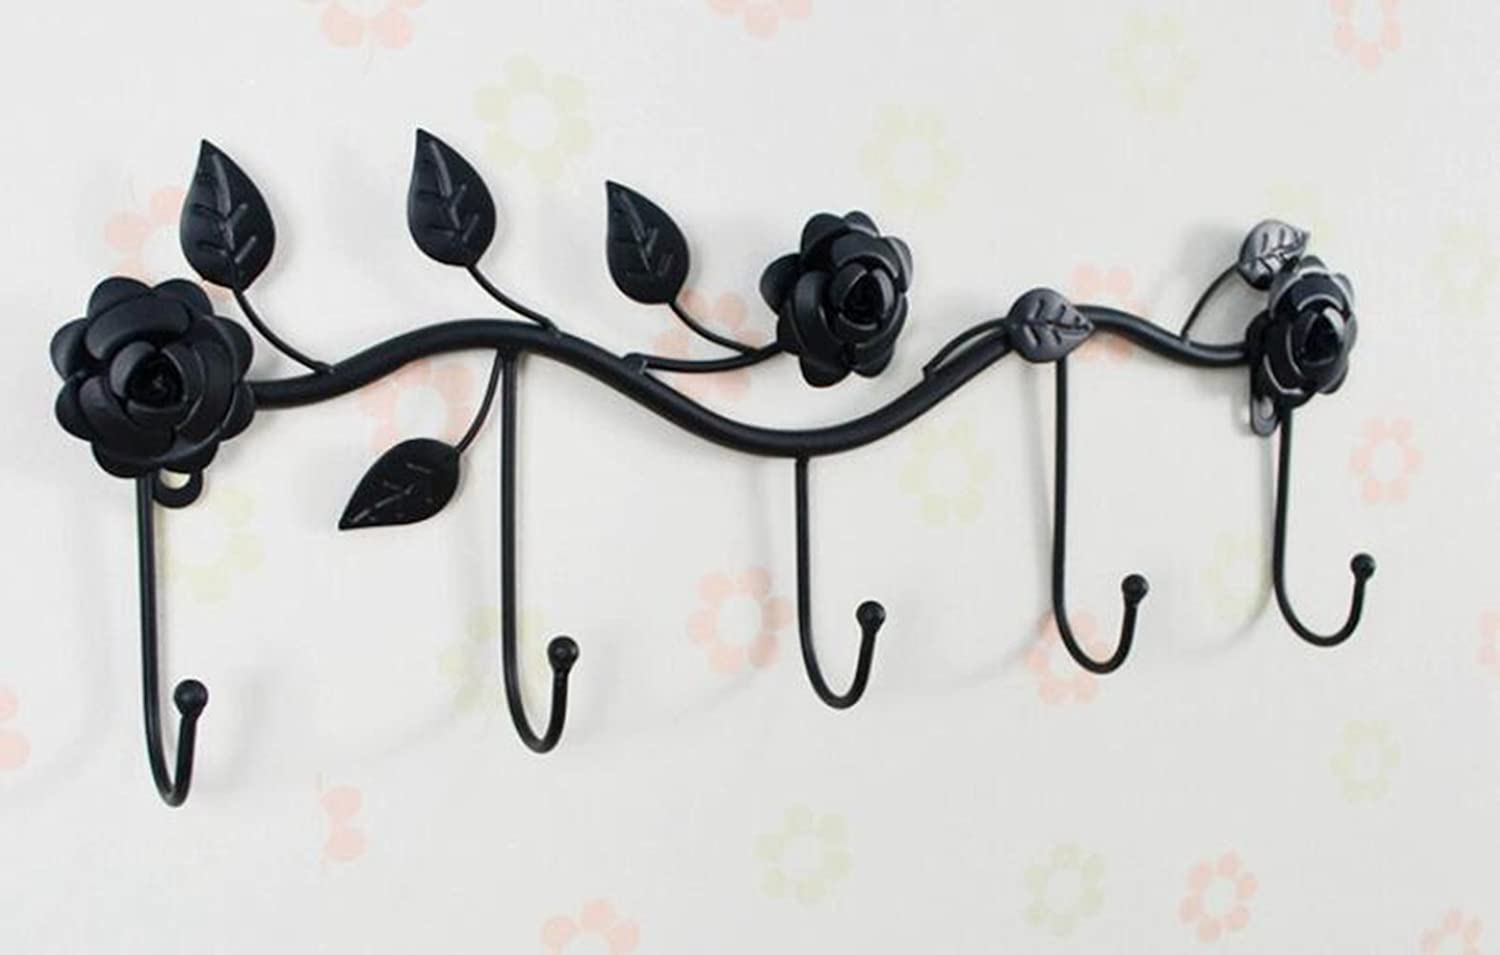 elegantstunning Creative Coat Rack Hanging Behind The Door Black